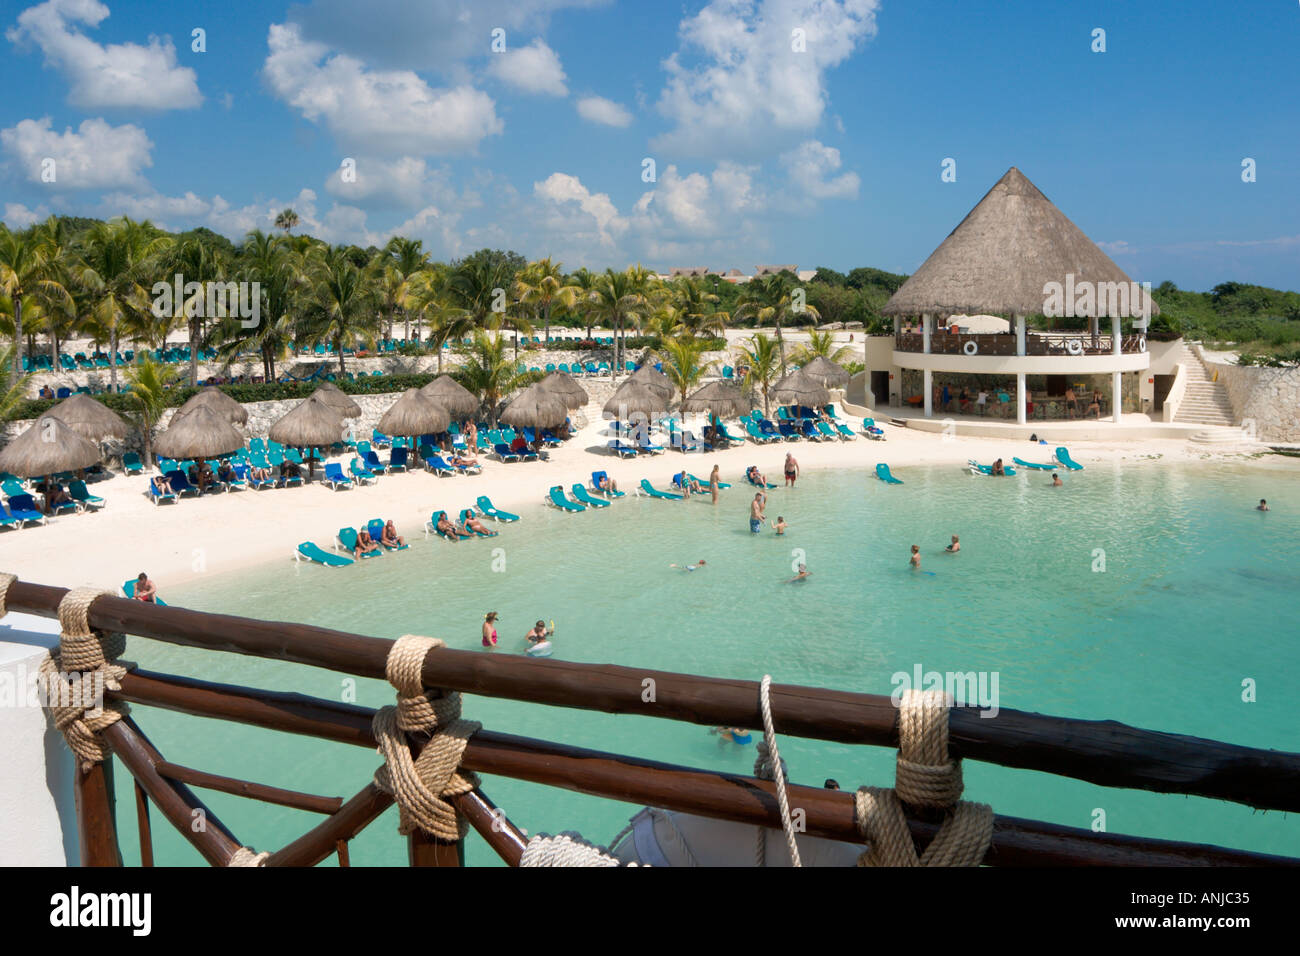 Beach At Hotel Occidental Flamenco Xcaret Riviera Maya Yucatan Peninsula Mexico